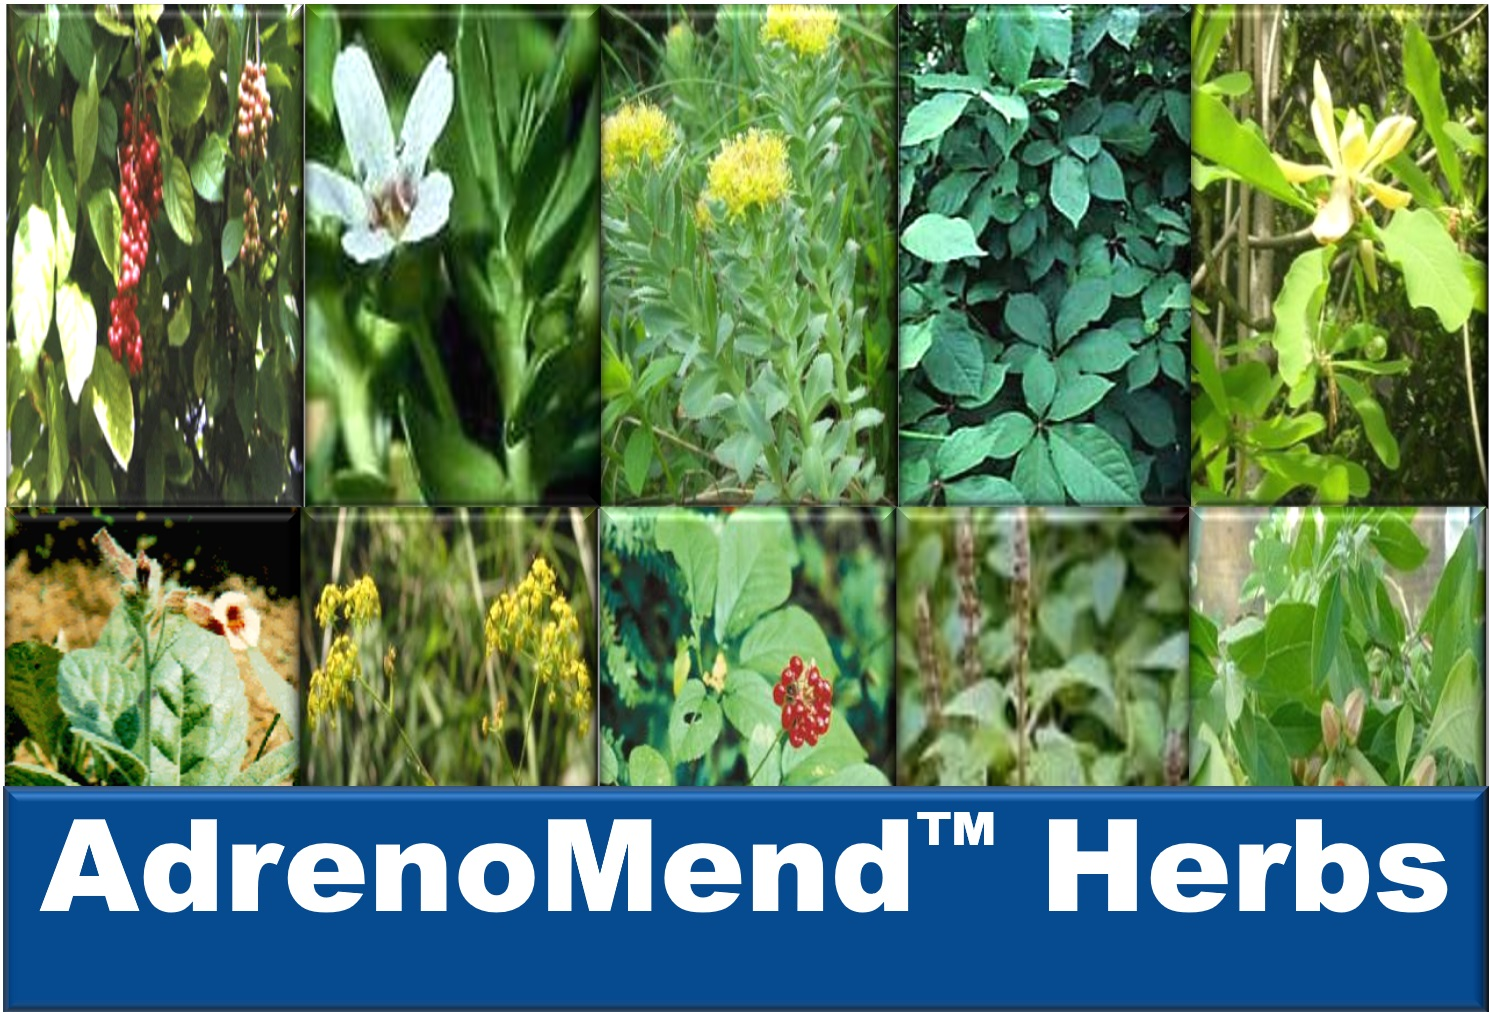 Learn about the AdrenoMend™ Herbs